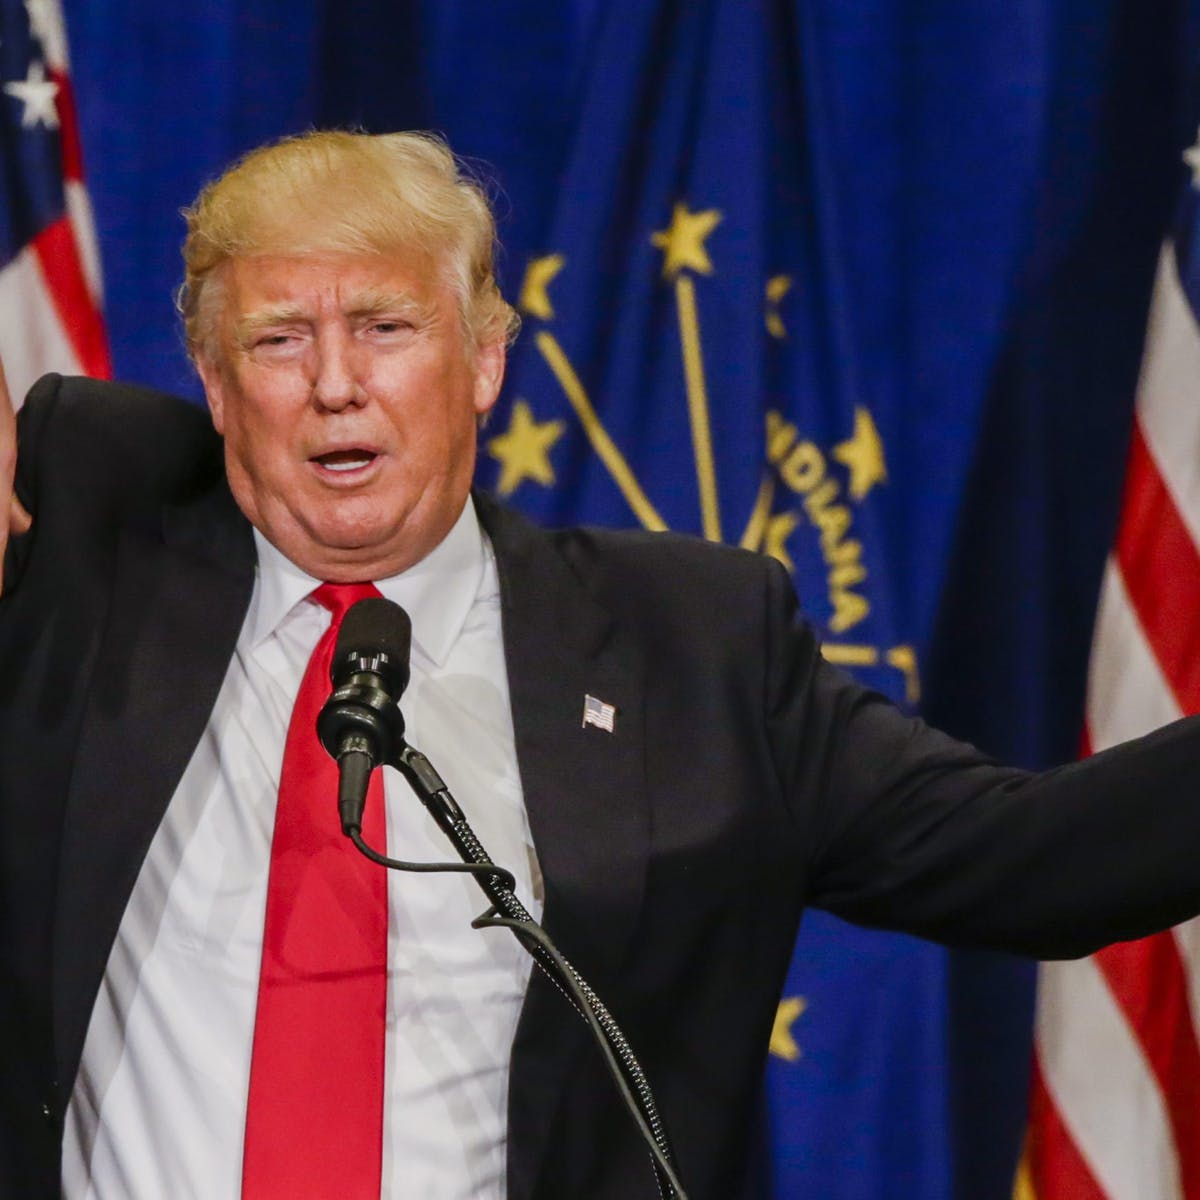 Donald Trump Both The Old Crazy And The New Normal